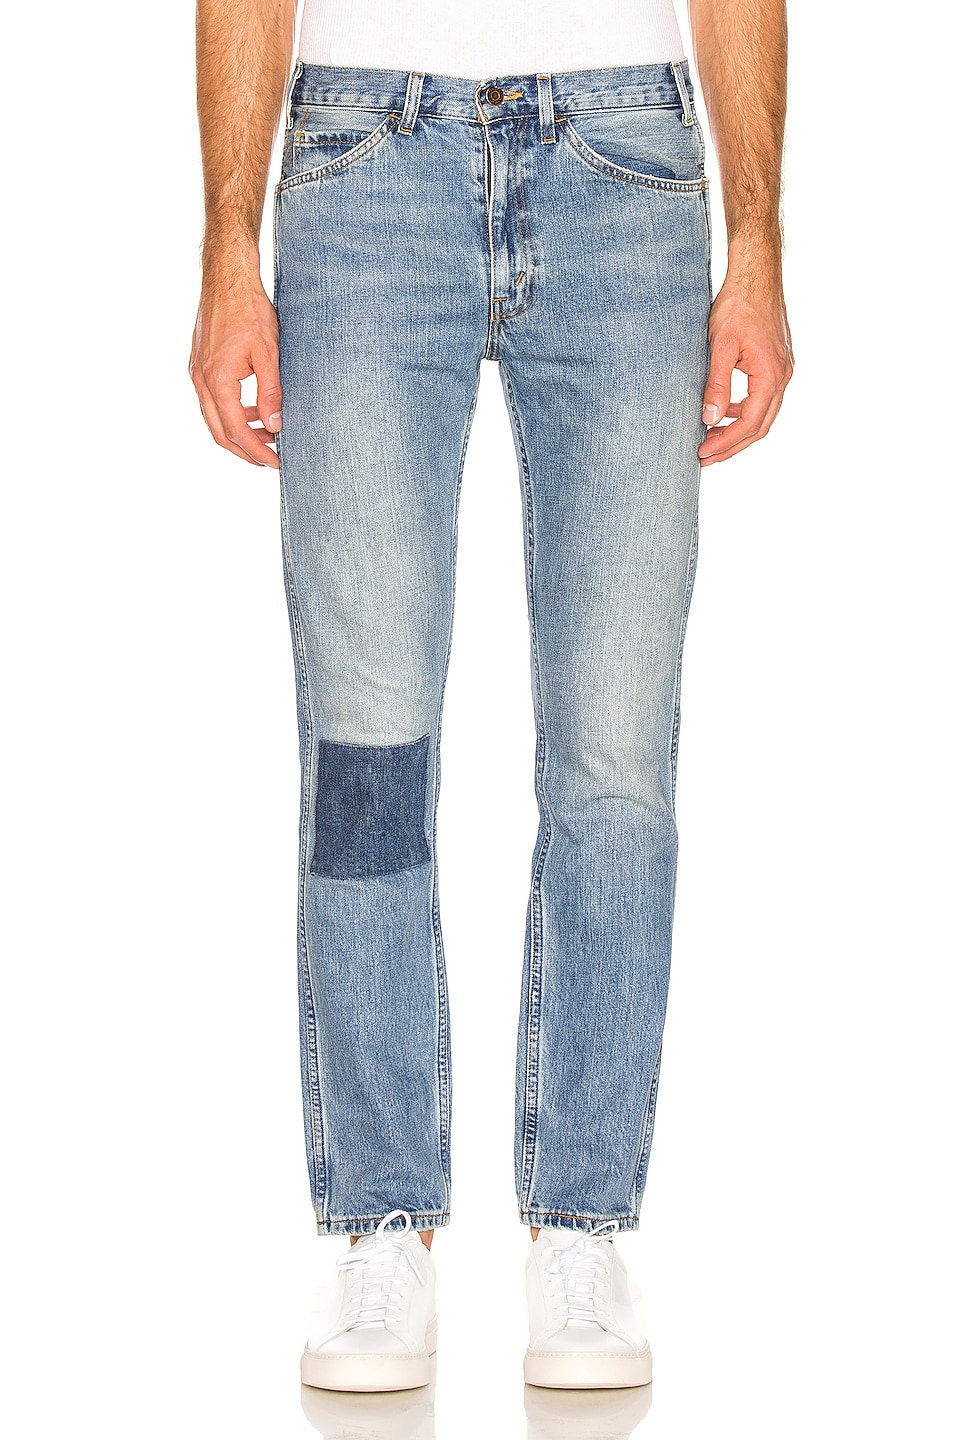 Levi's Jeans LEVI'S VINTAGE CLOTHING 1969 606 JEANS IN SKYWRITER